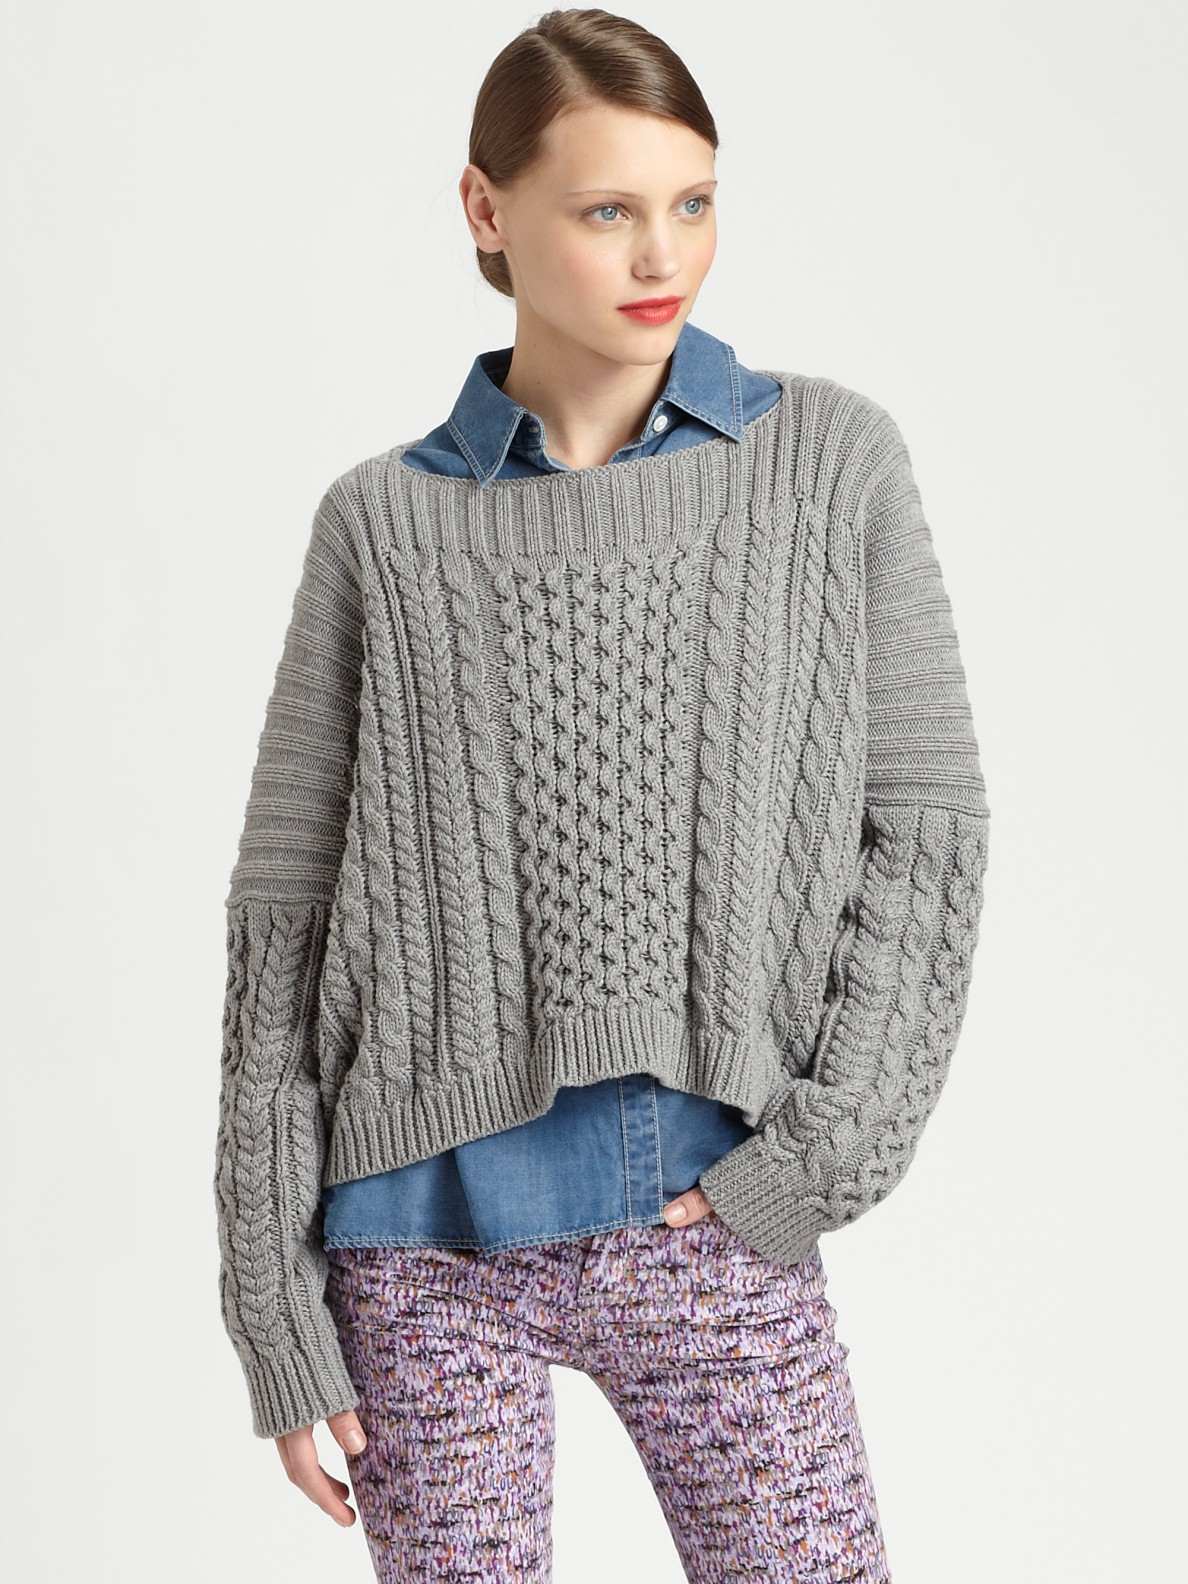 marc by marc jacobs geraldine sweater in gray lyst. Black Bedroom Furniture Sets. Home Design Ideas